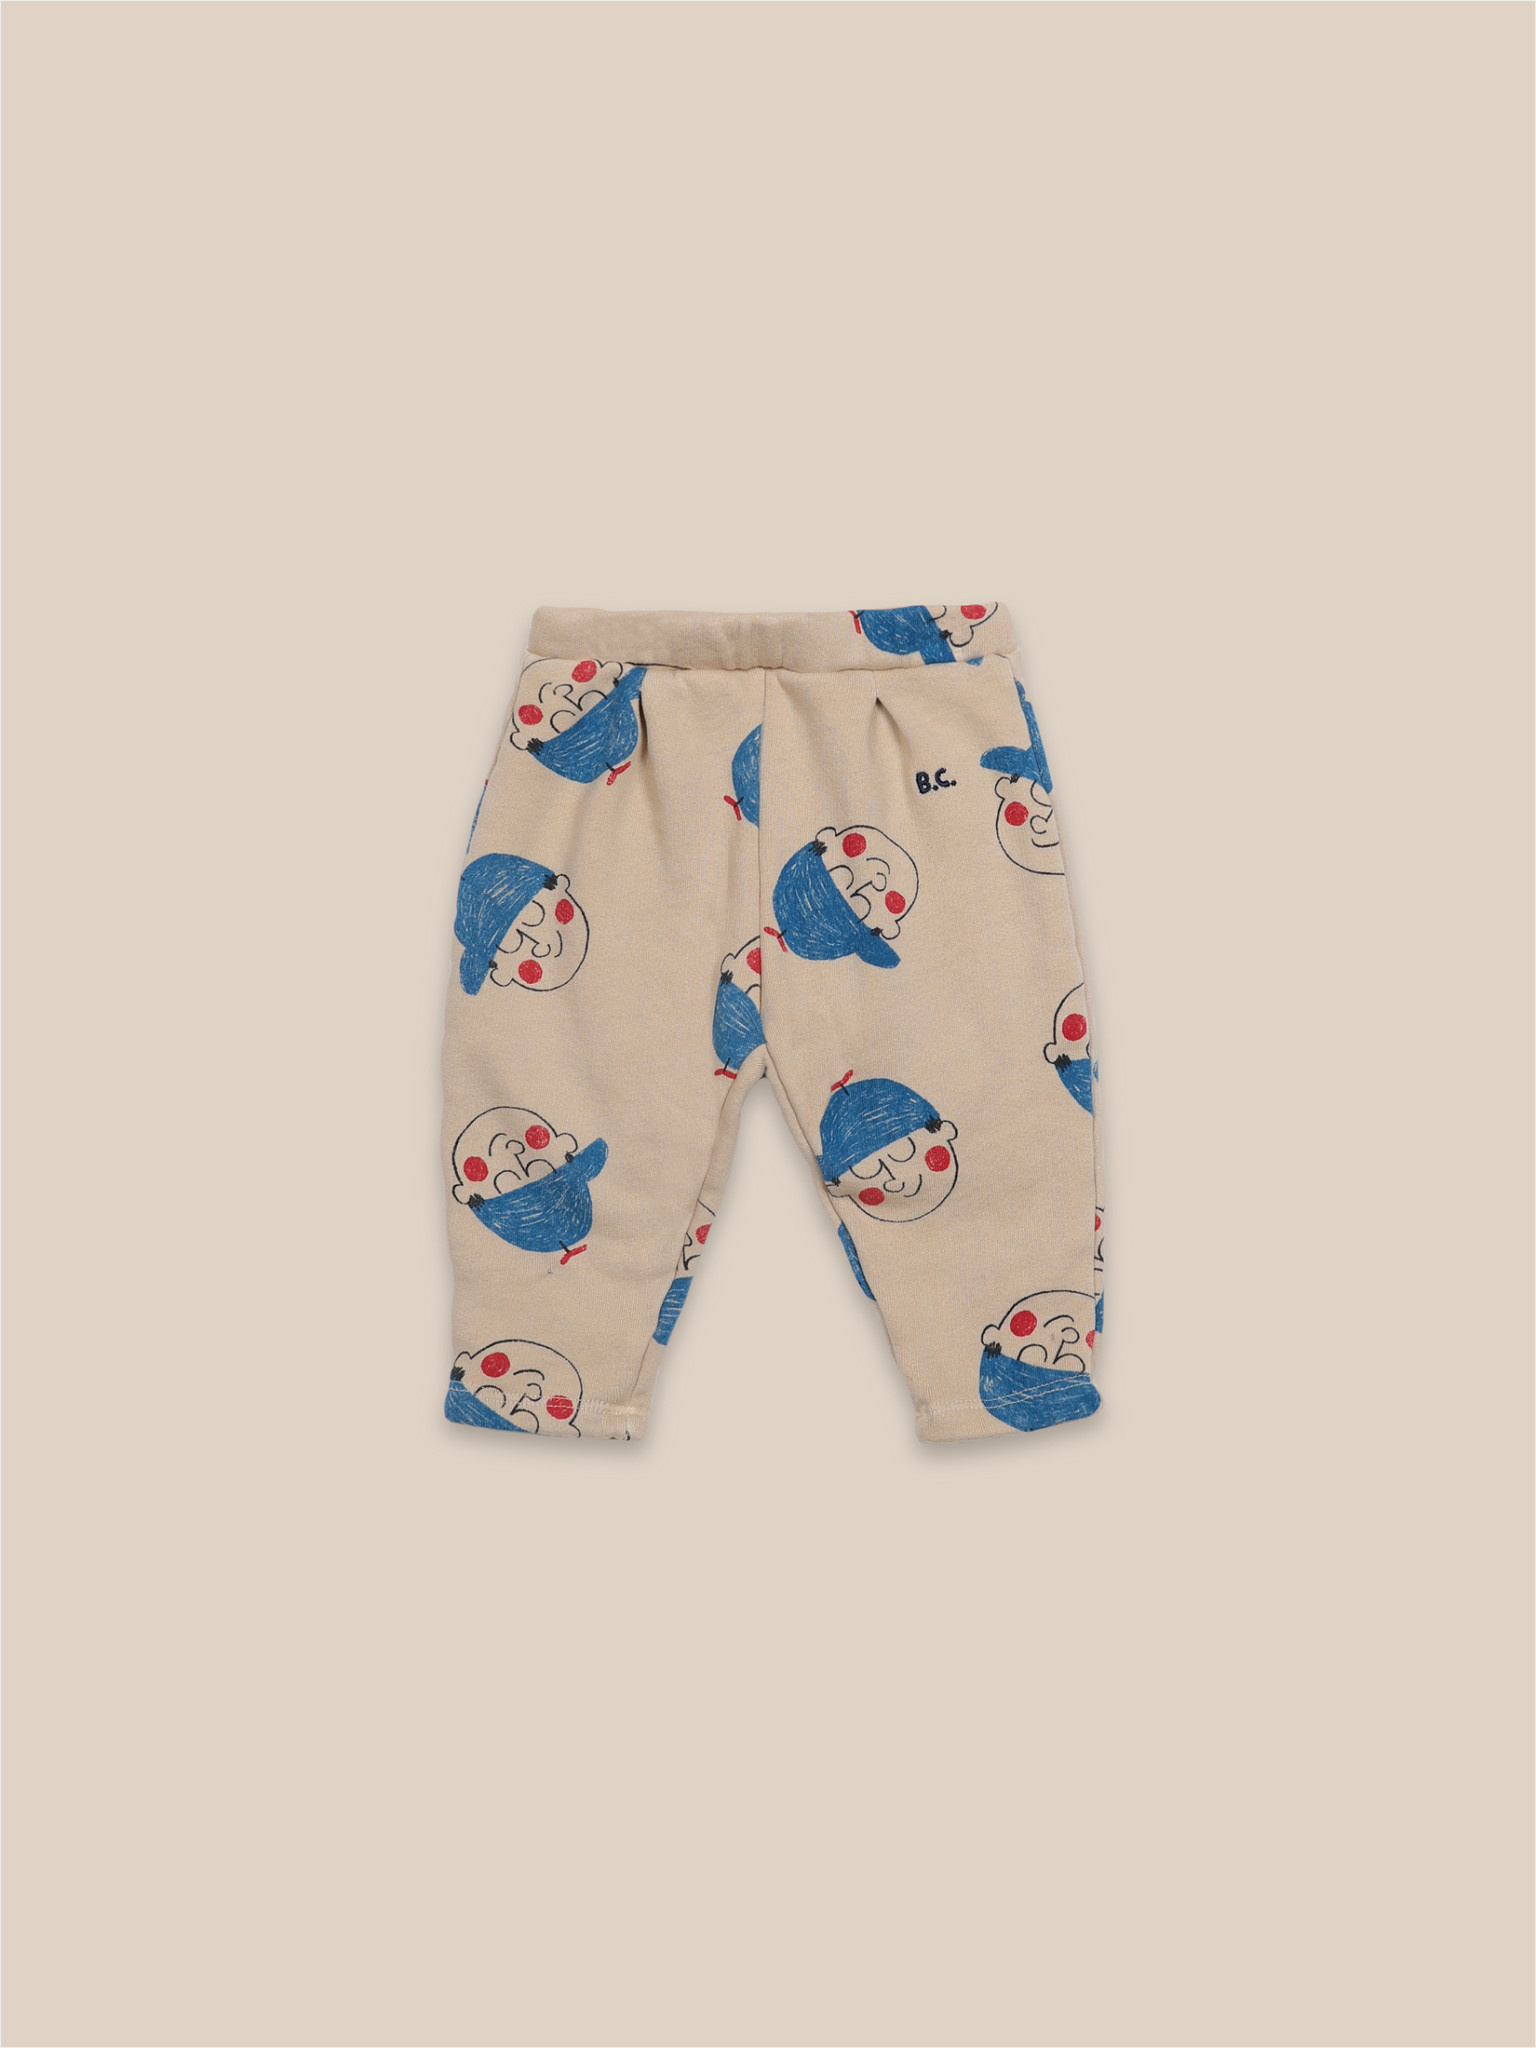 BOBO CHOSES Boys All Over Jogging Pants